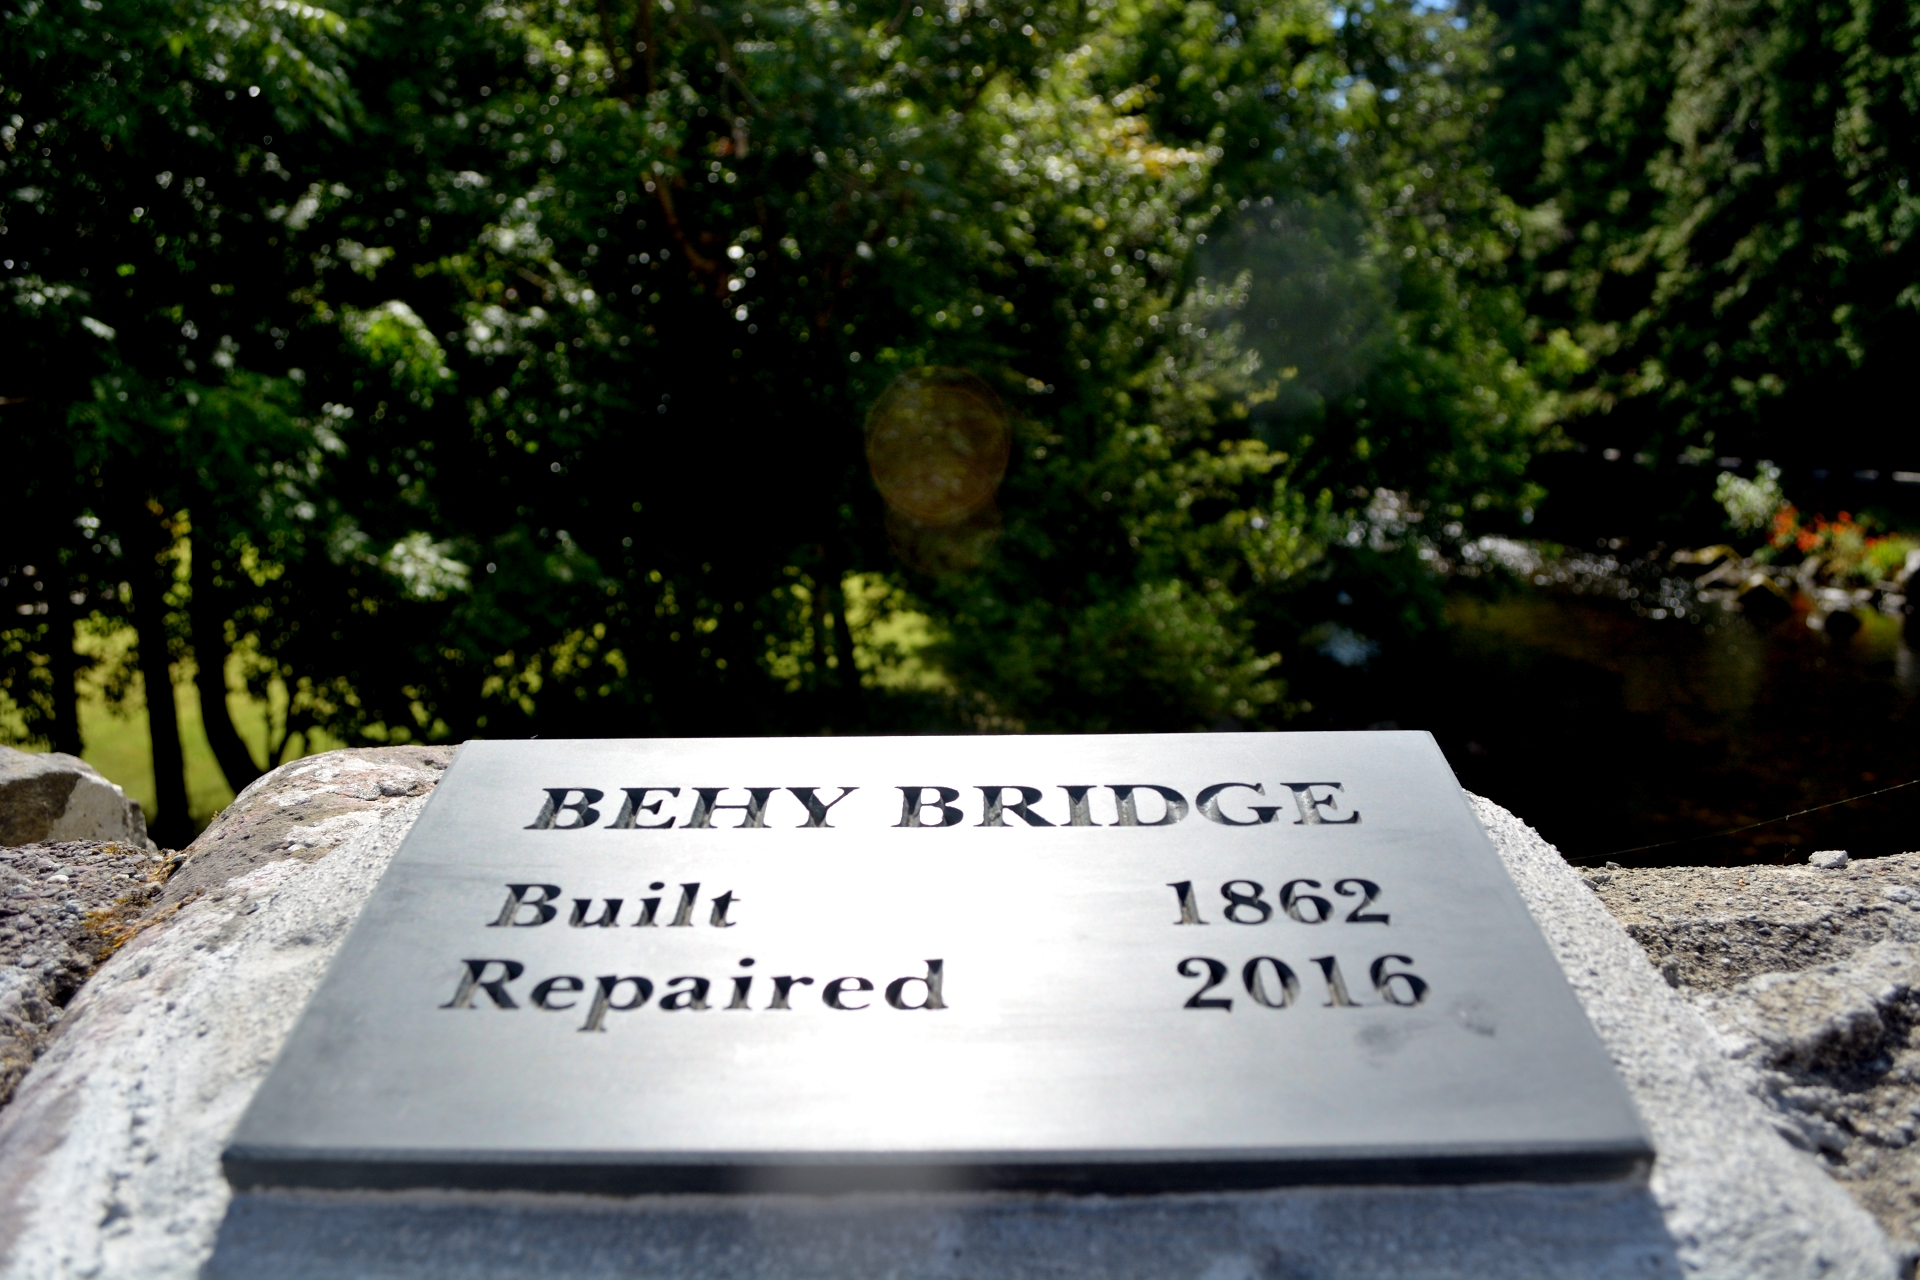 Plaque on The Behy Bridge